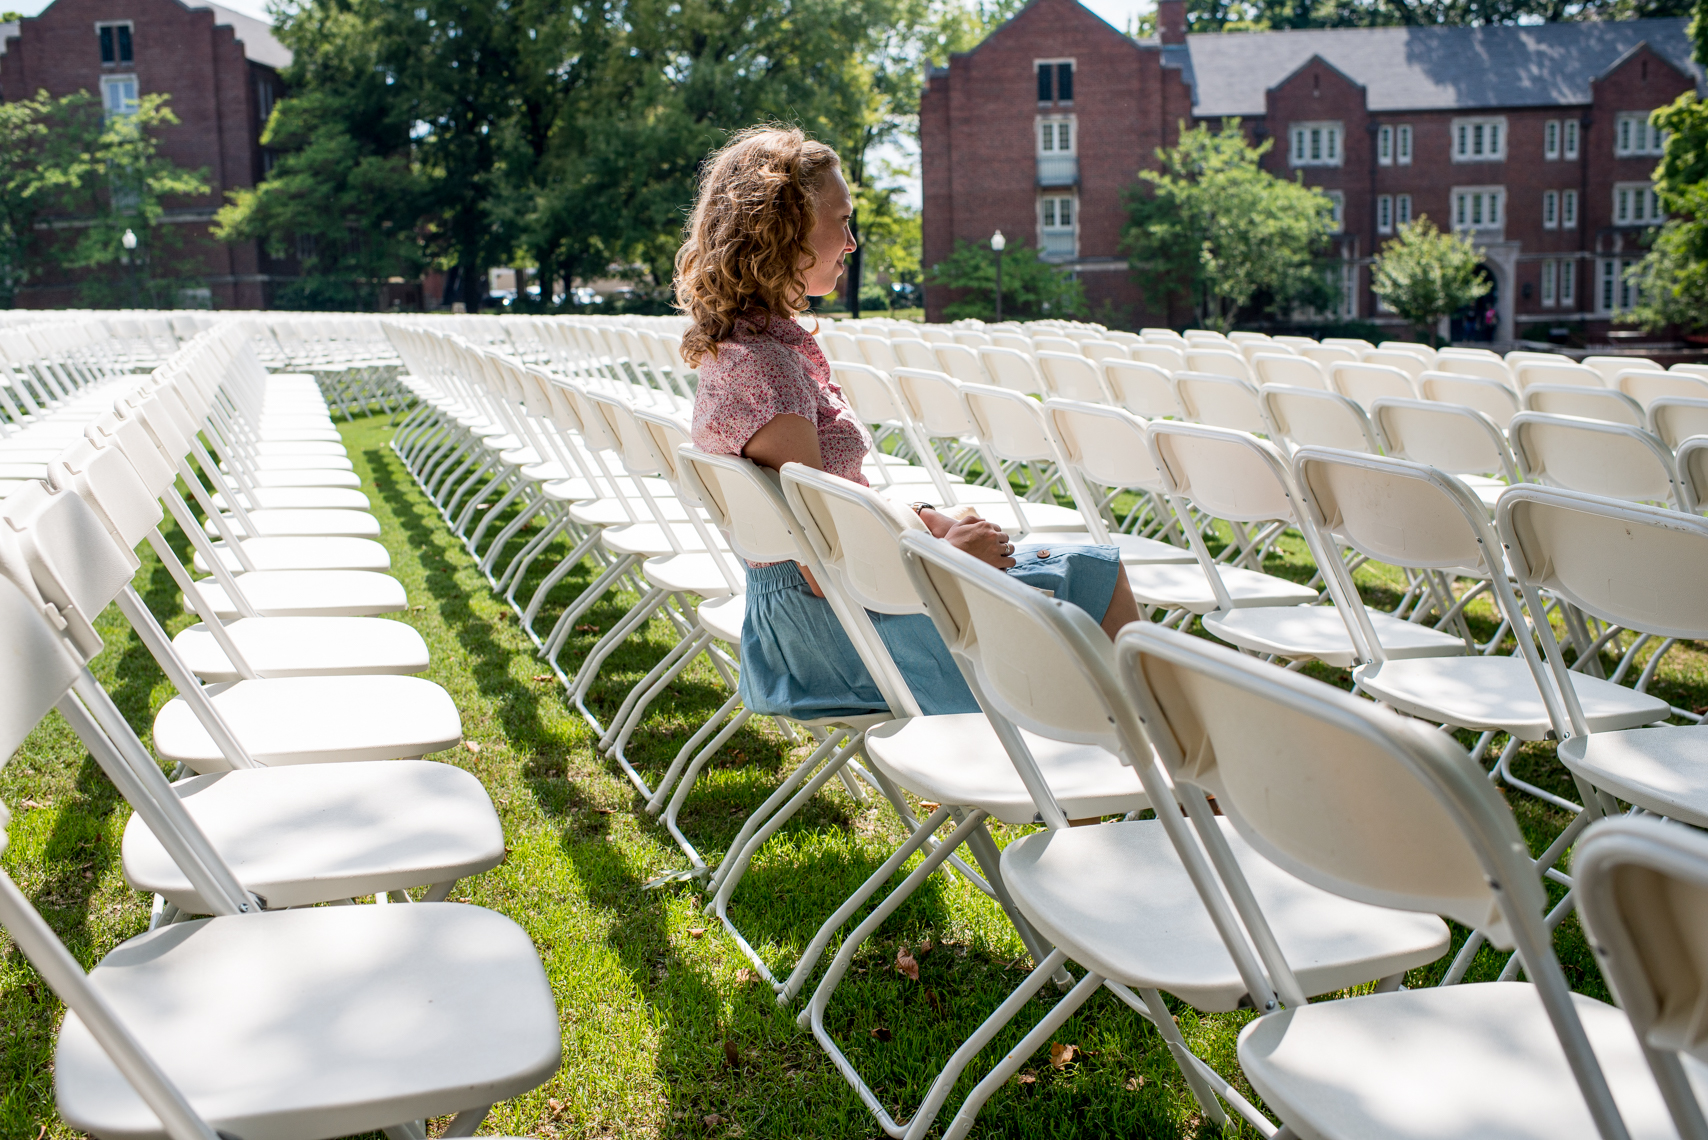 WSJ Money and Investing, student on Alumni Lawn, graduation, freshman orientation, campus of Vanderbilt University, Nashville, Tennessee